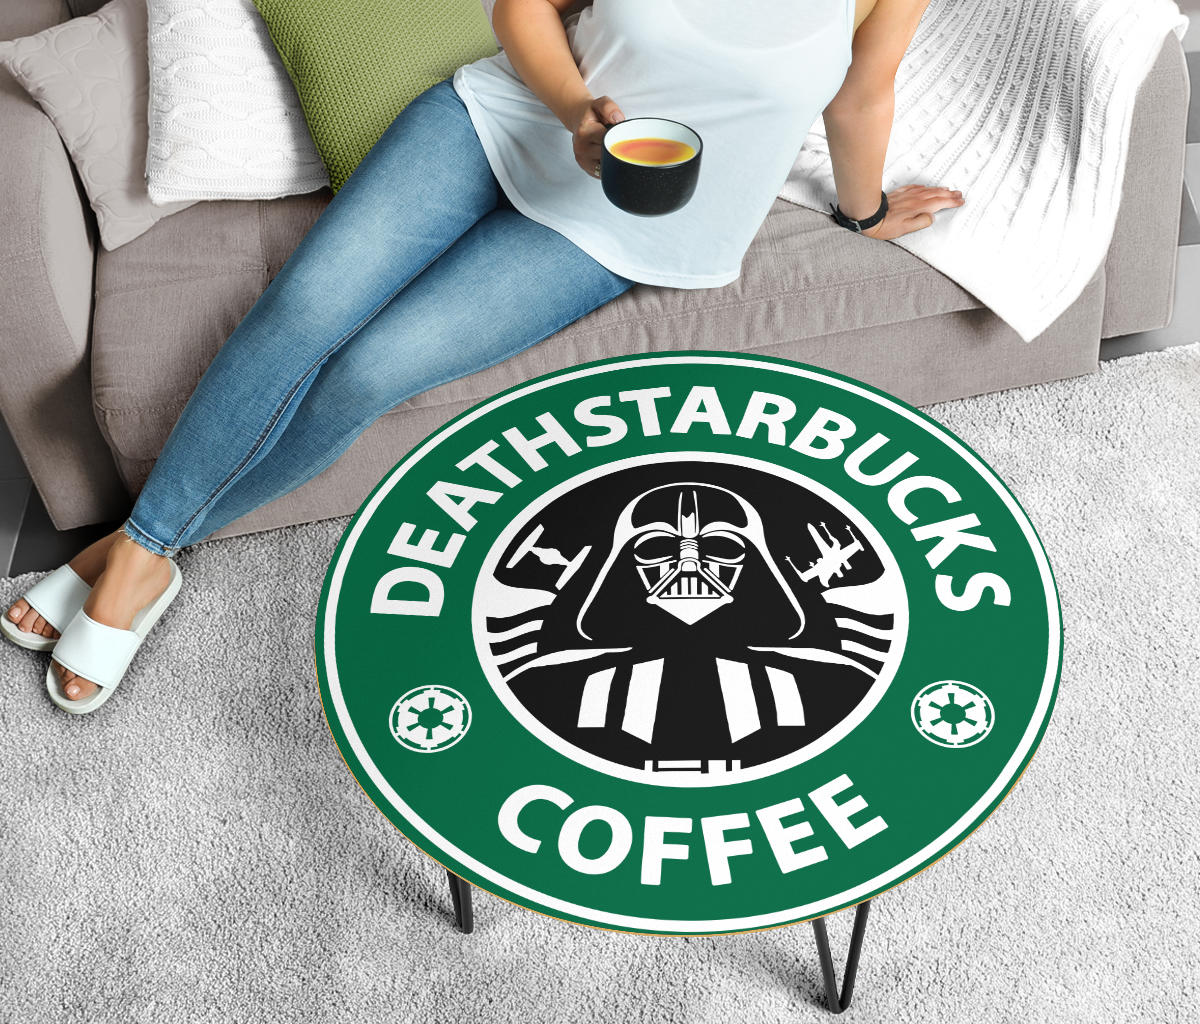 Star Wars Coffee Table, Deathstarbucks, Modern Wood Round Table